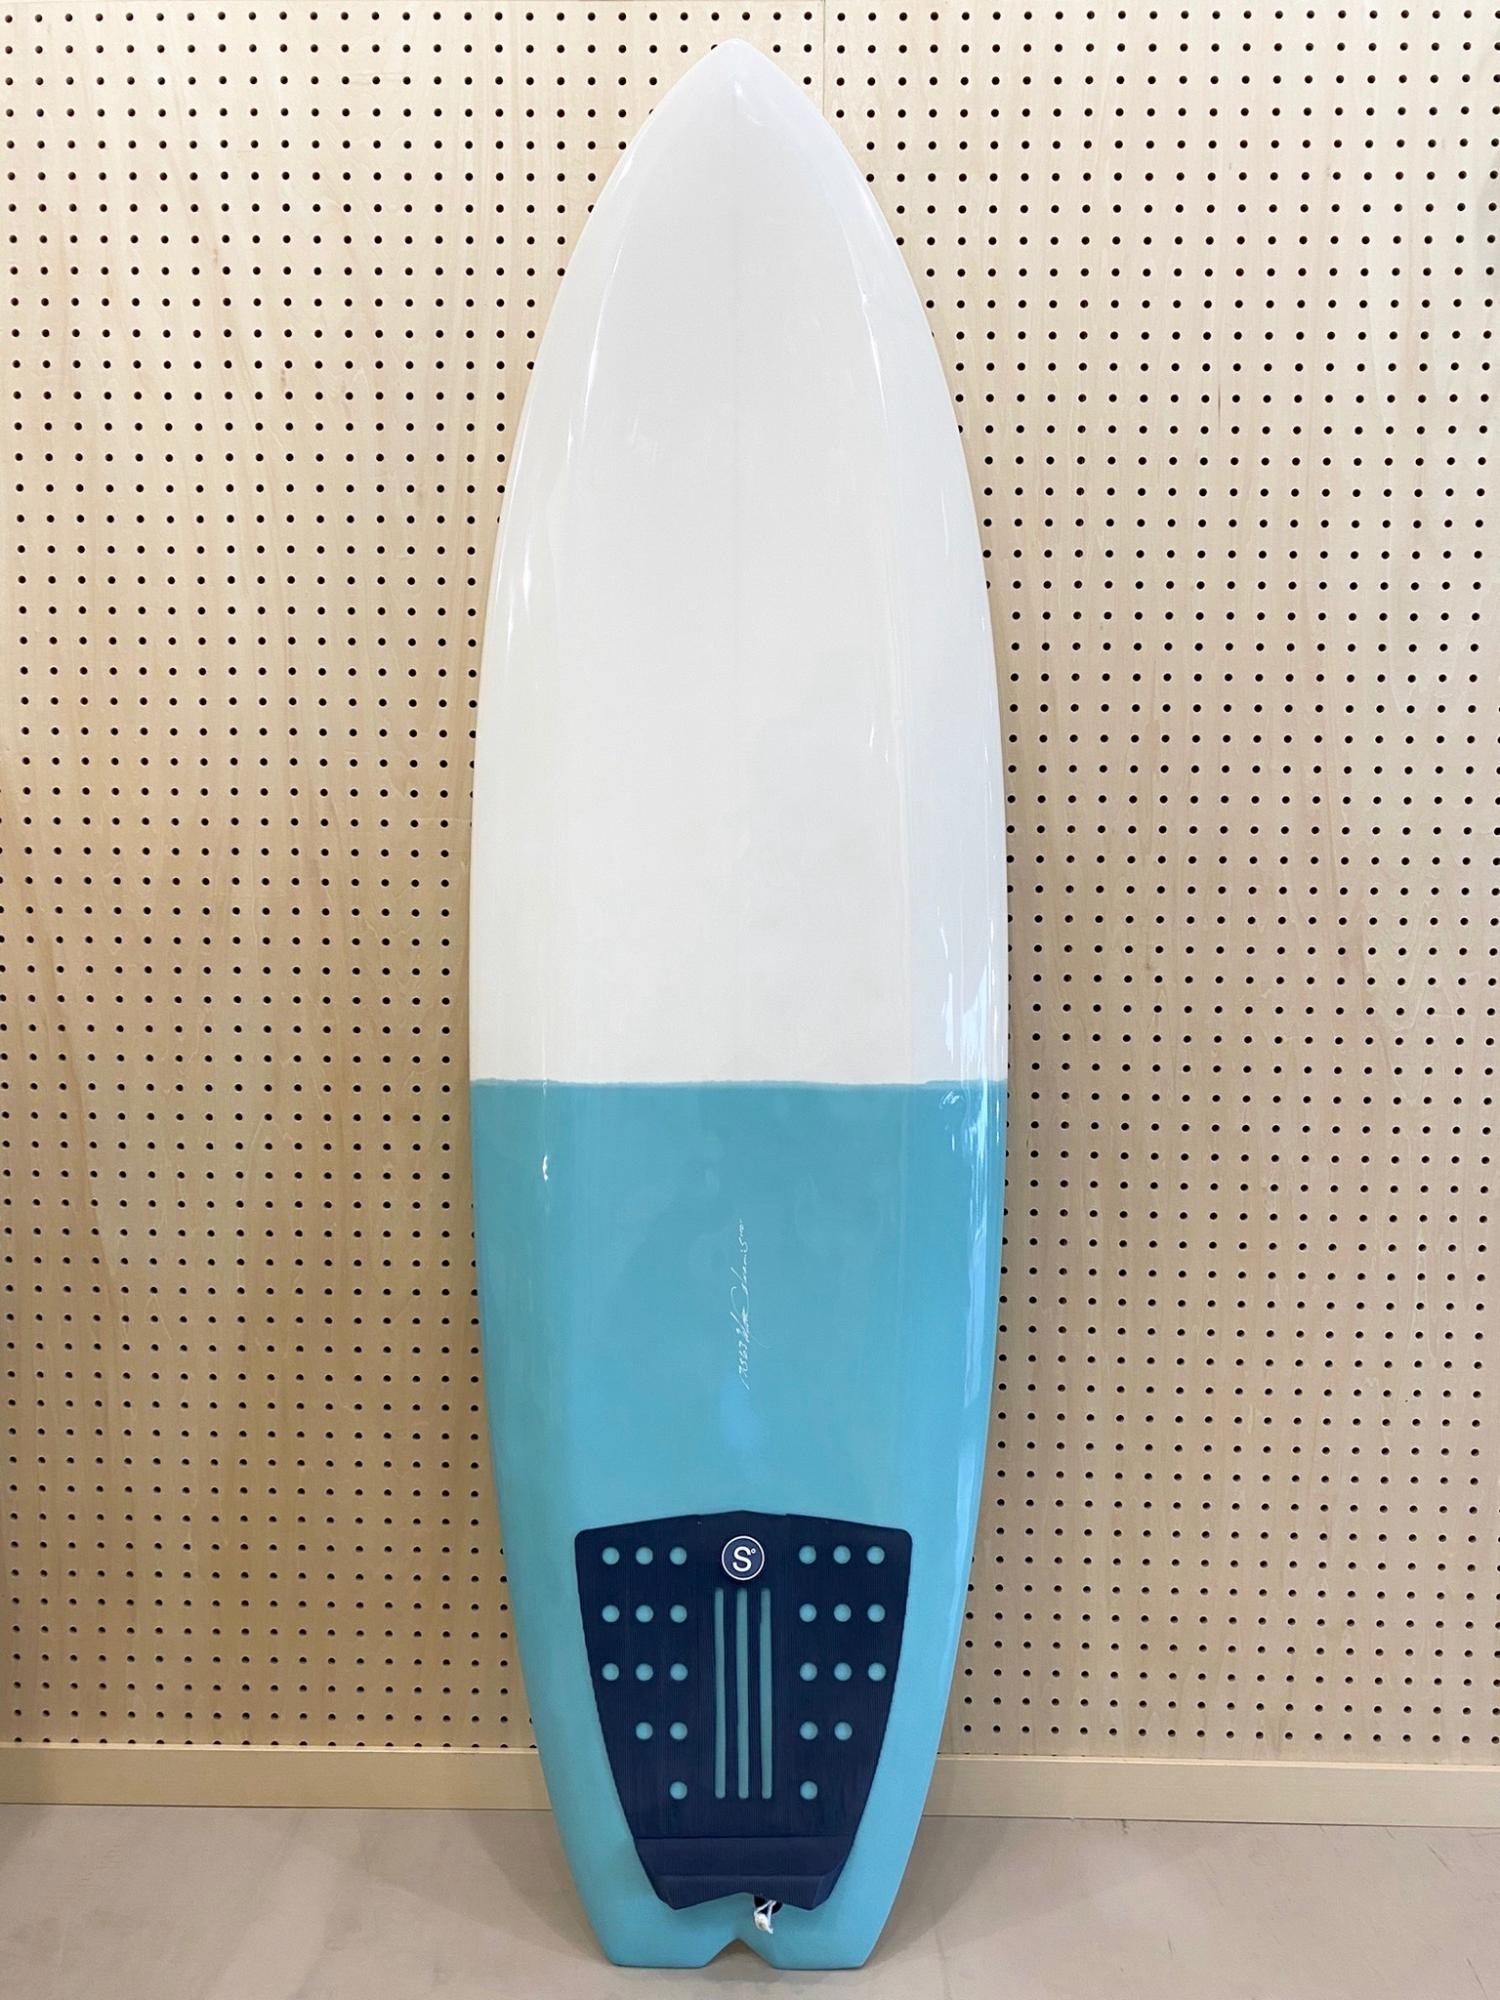 USED BOARDS (BING SUN FISH 5.8)